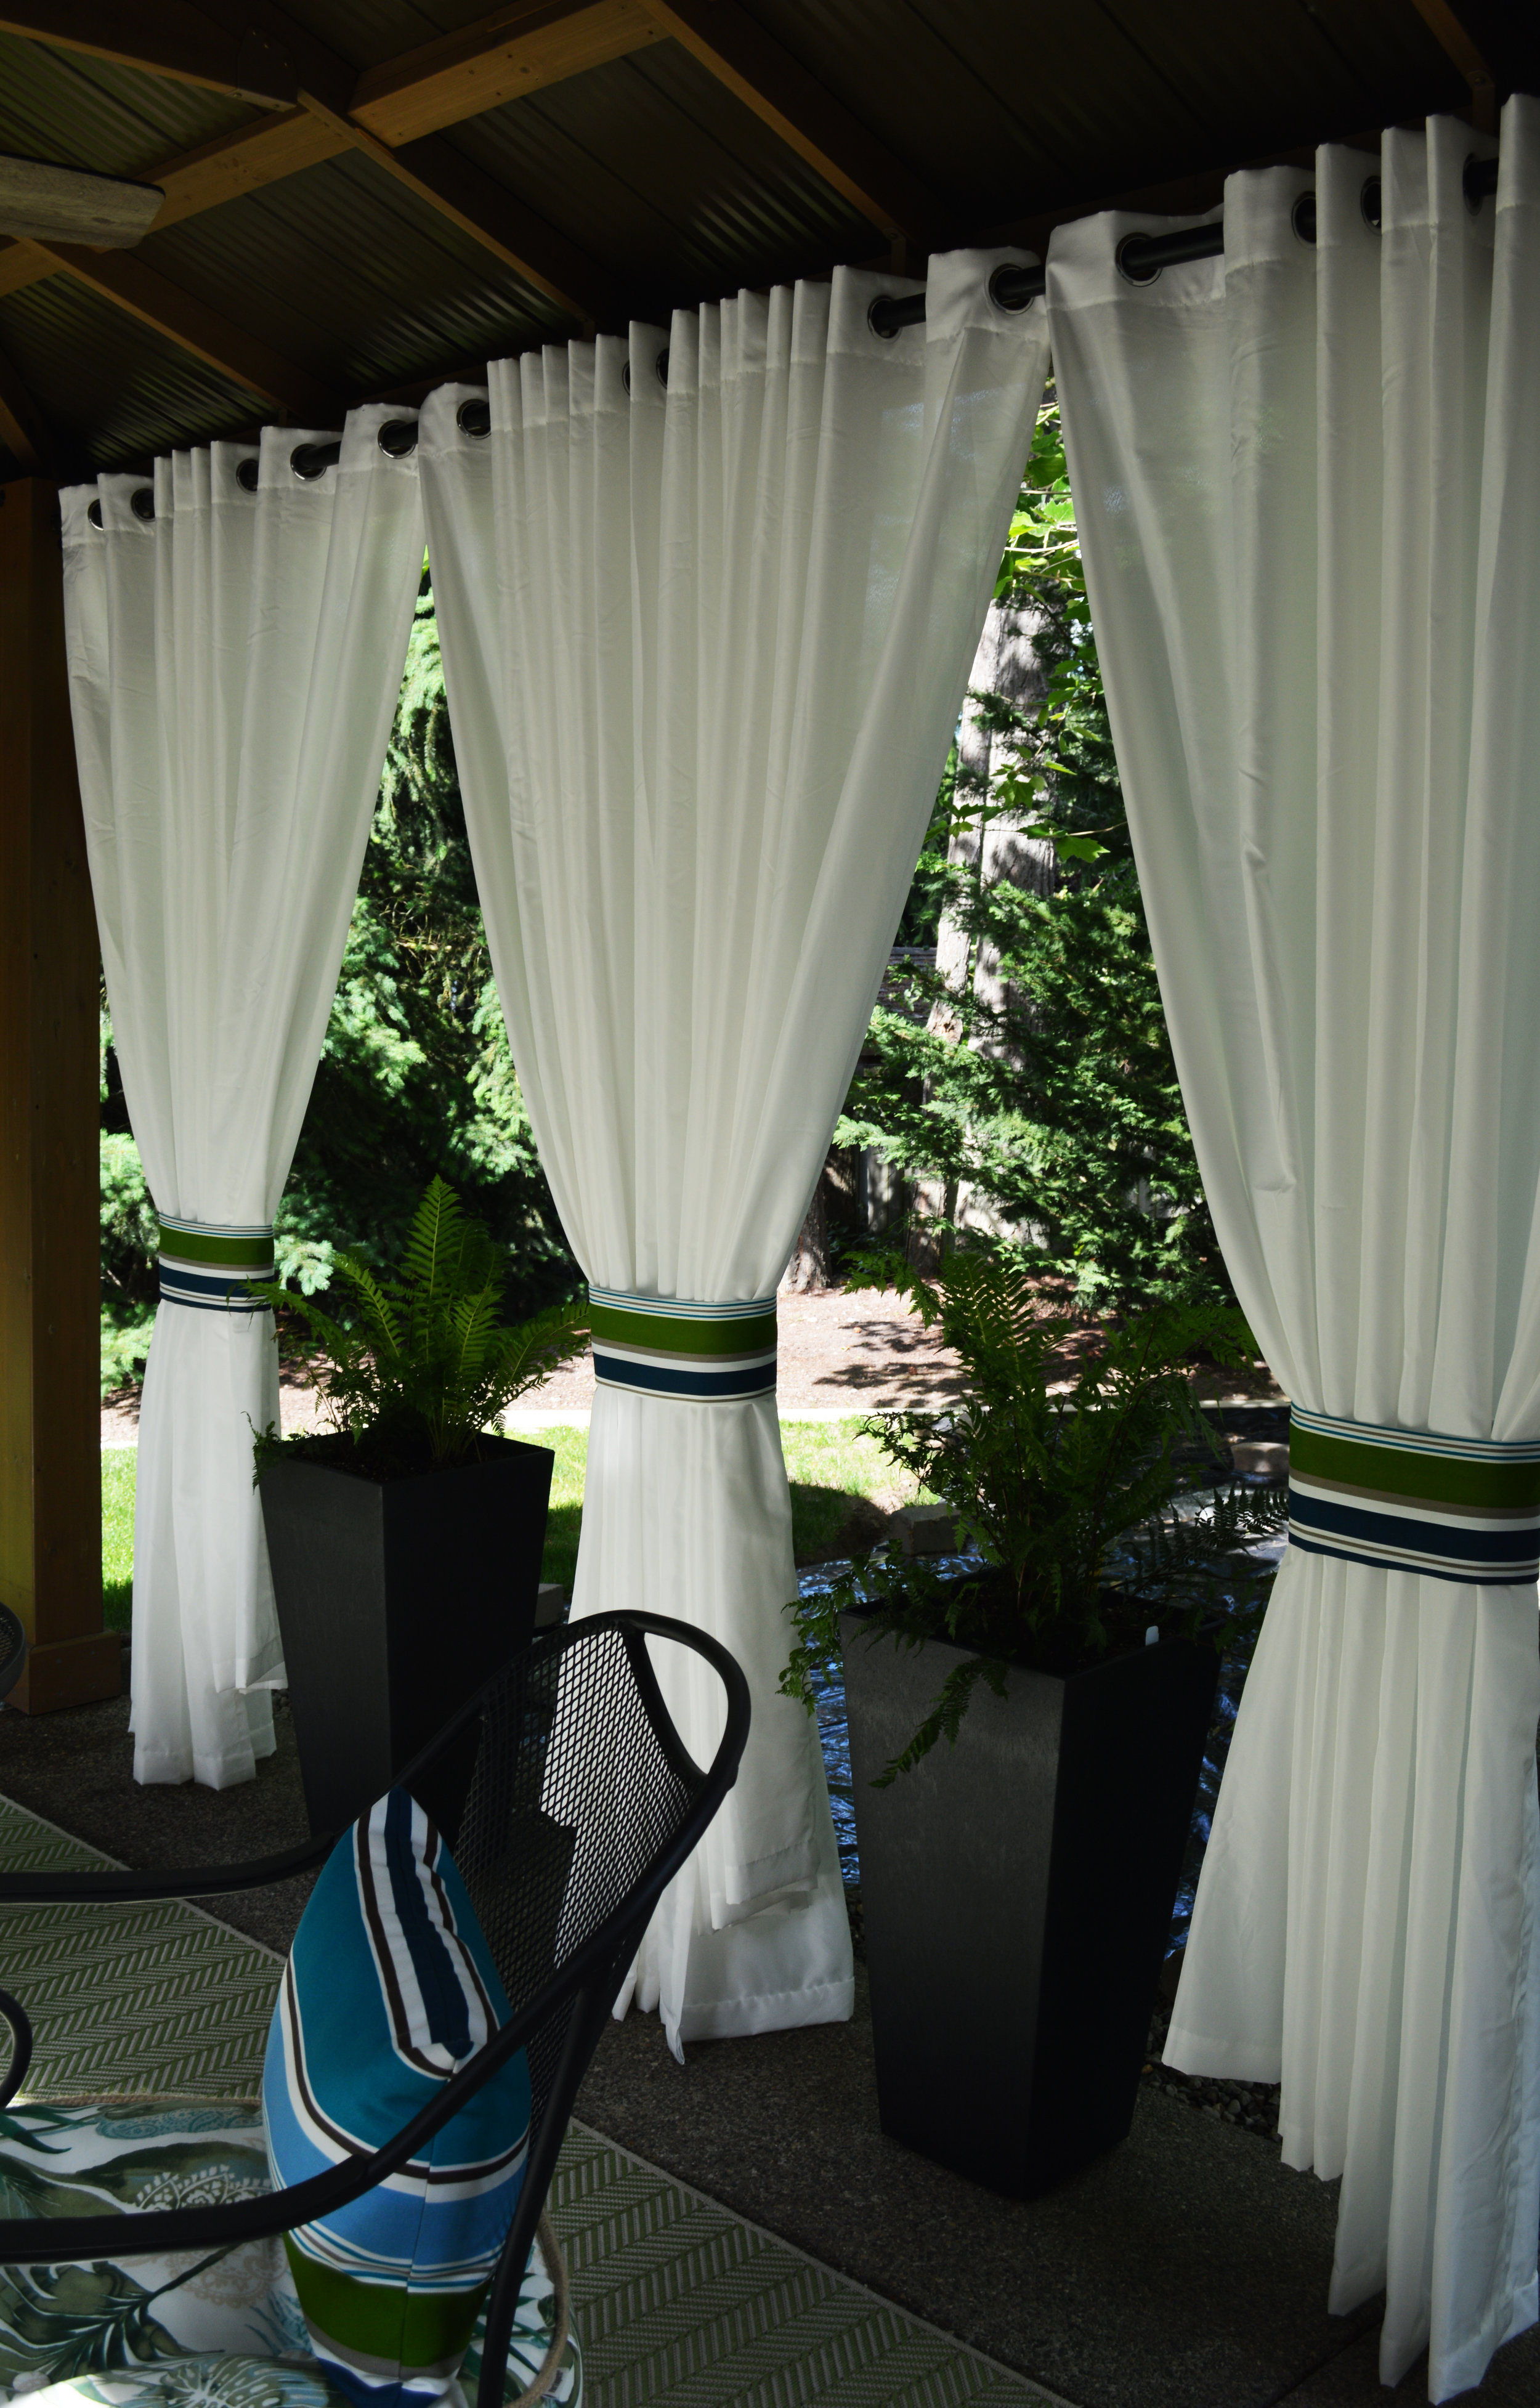 outdoor draperies create privacy and help control the view…